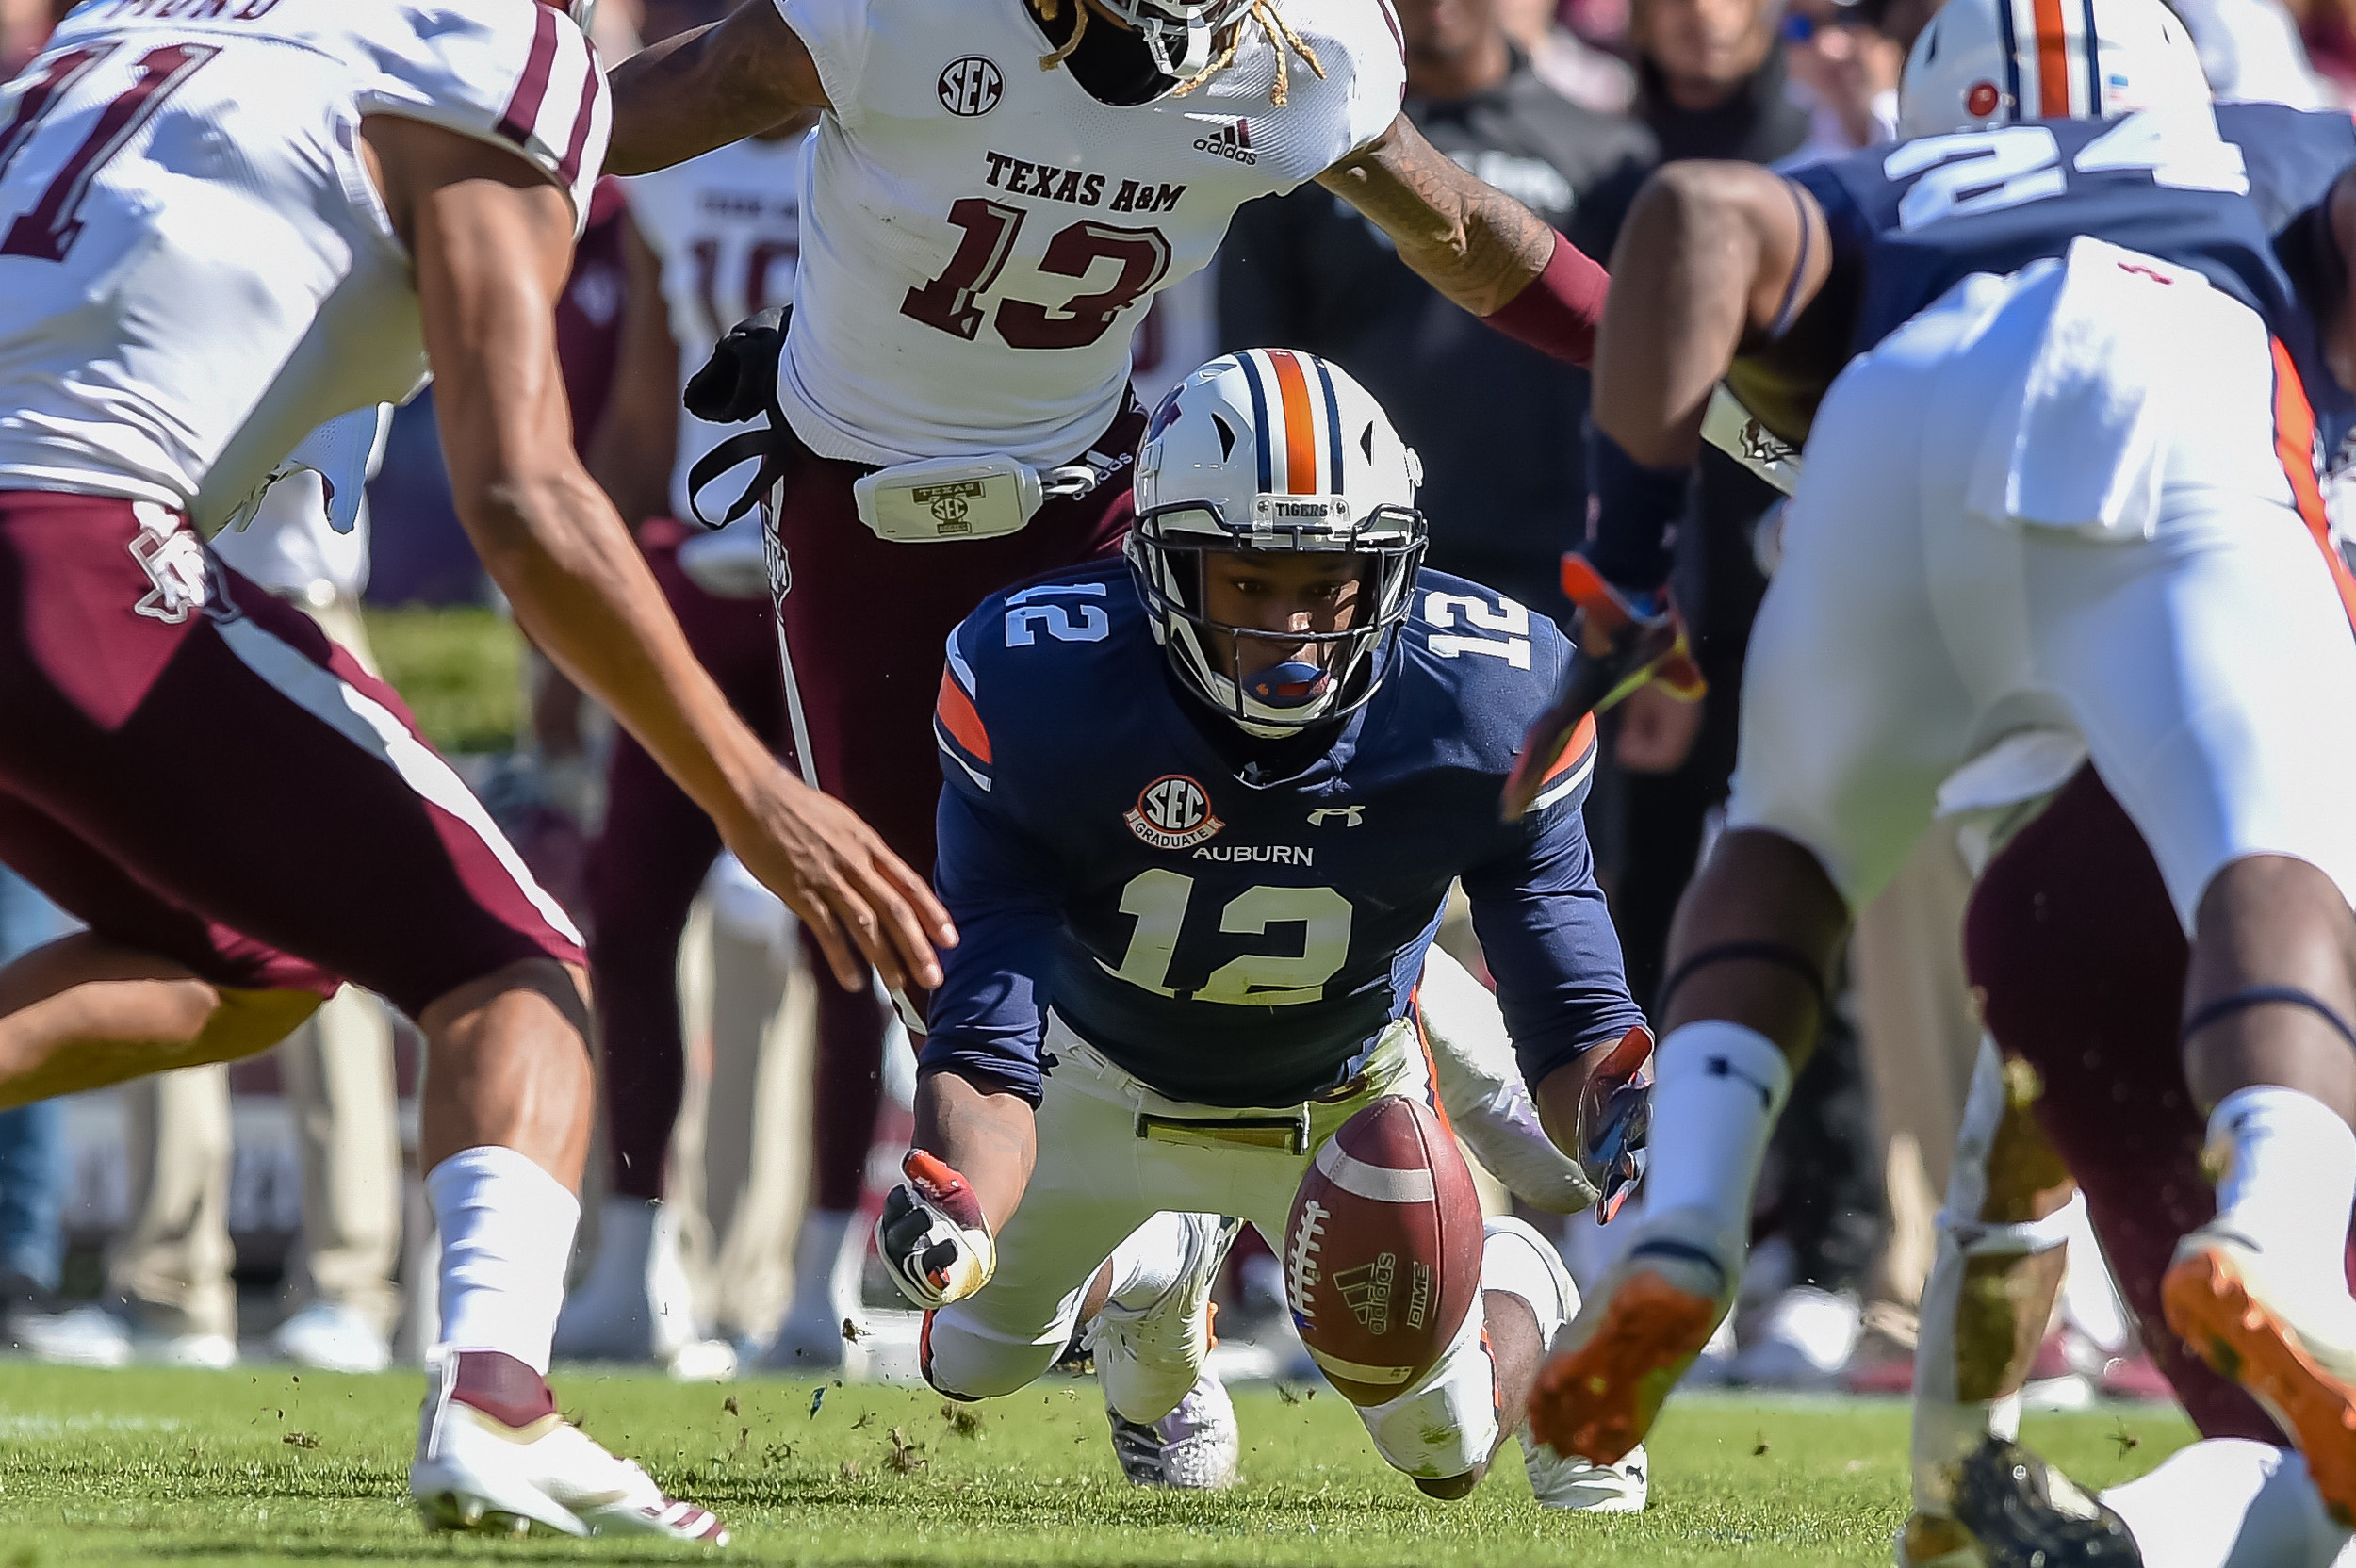 Auburn Tigers defensive back Jamel Dean (12) dives for.a fumble during the first half of an NCAA football game against the Texas A&M Aggies Saturday, November 3, 2018, at Jordan-Hare Stadium in Auburn, Ala. (Photo by Jeff Johnsey)